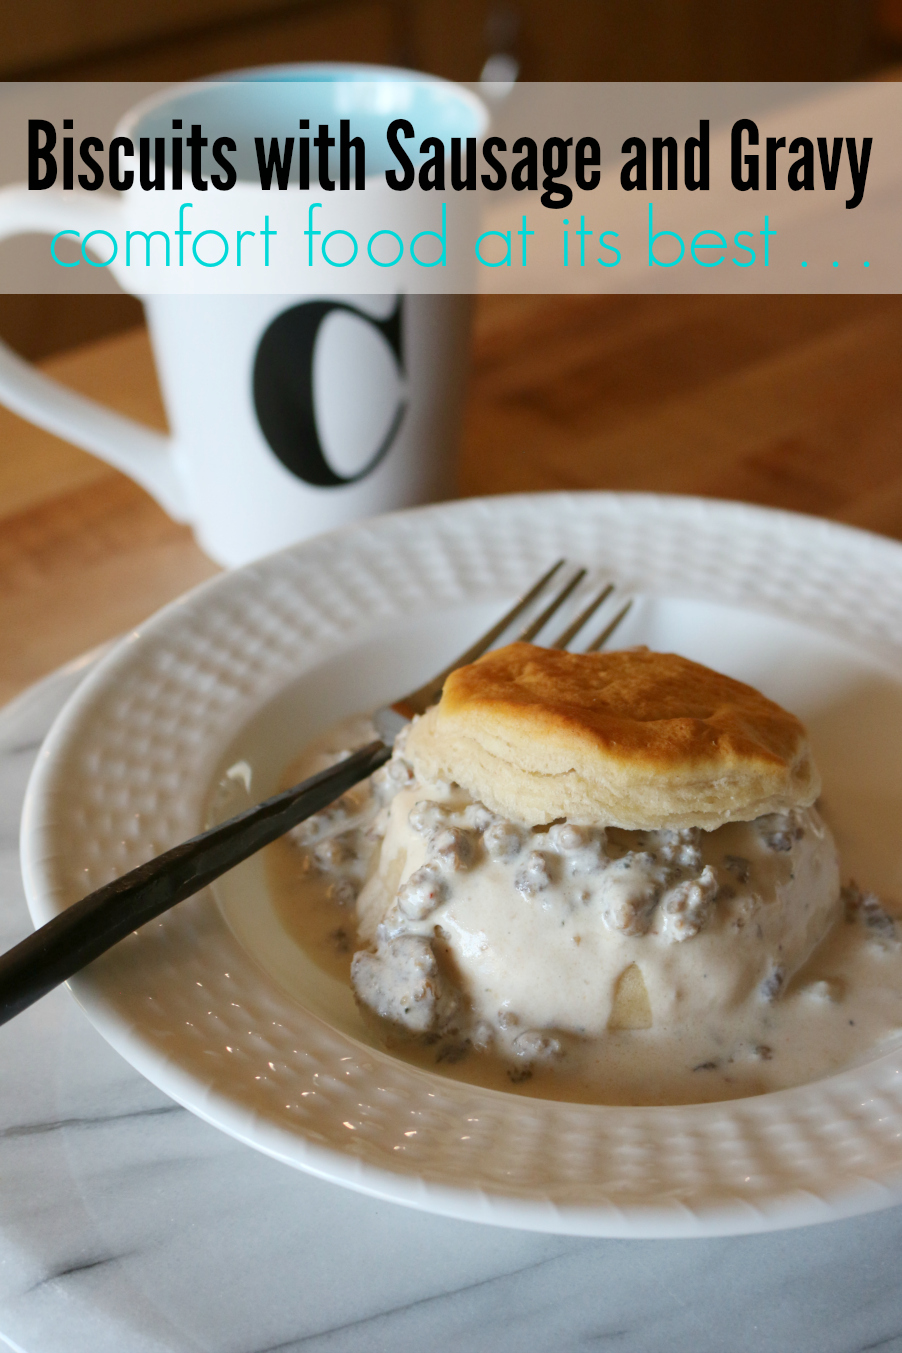 Biscuits with Sausage and Gravy Delicious comfort food at its best | CeceliasGoodStuff.com | Good Food for Good People